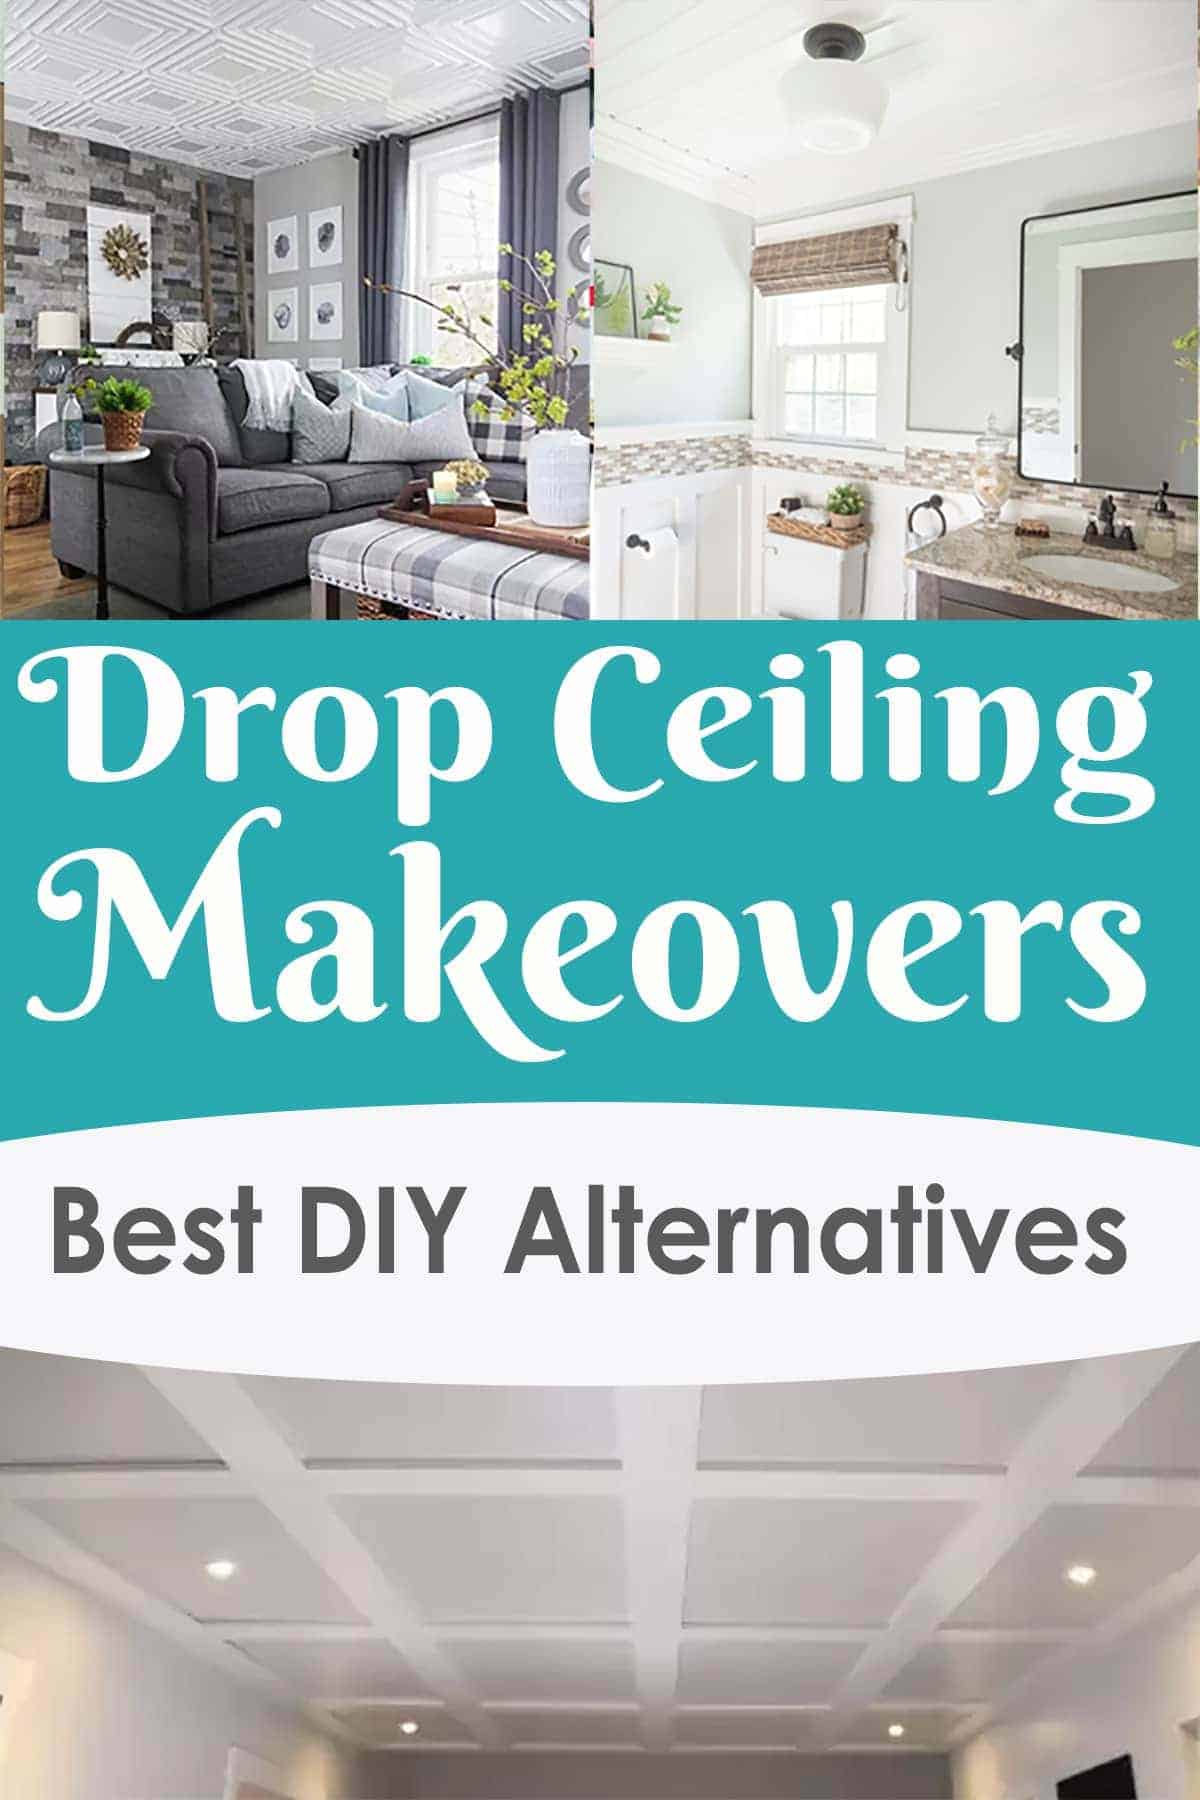 Drop ceiling makeovers with examples of the best DIY alternatives to an ugly suspended ceiling